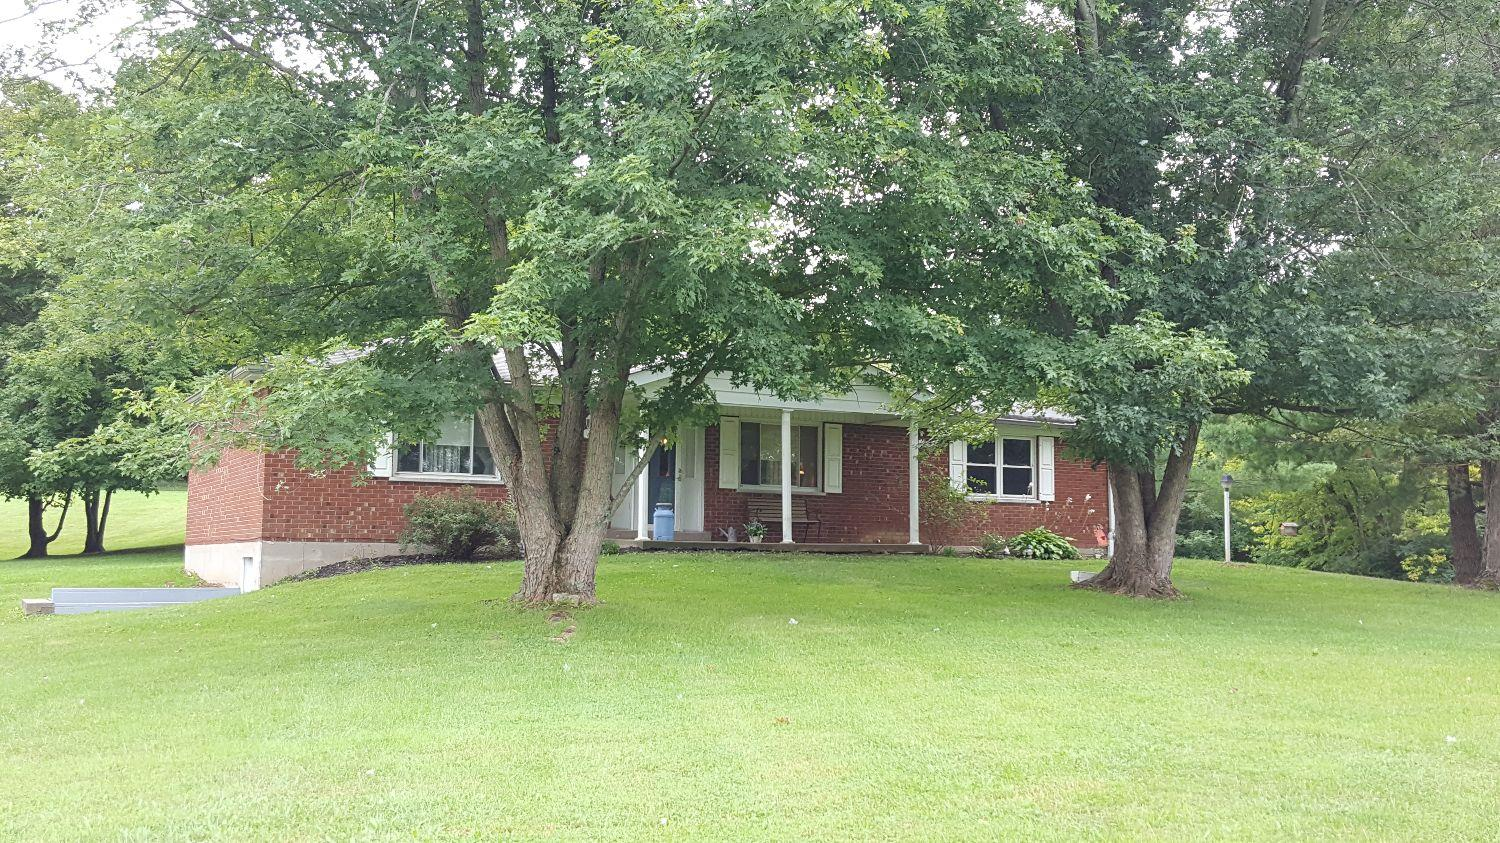 Photo 1 for 3322 Peel Rd Burlington, KY 41005